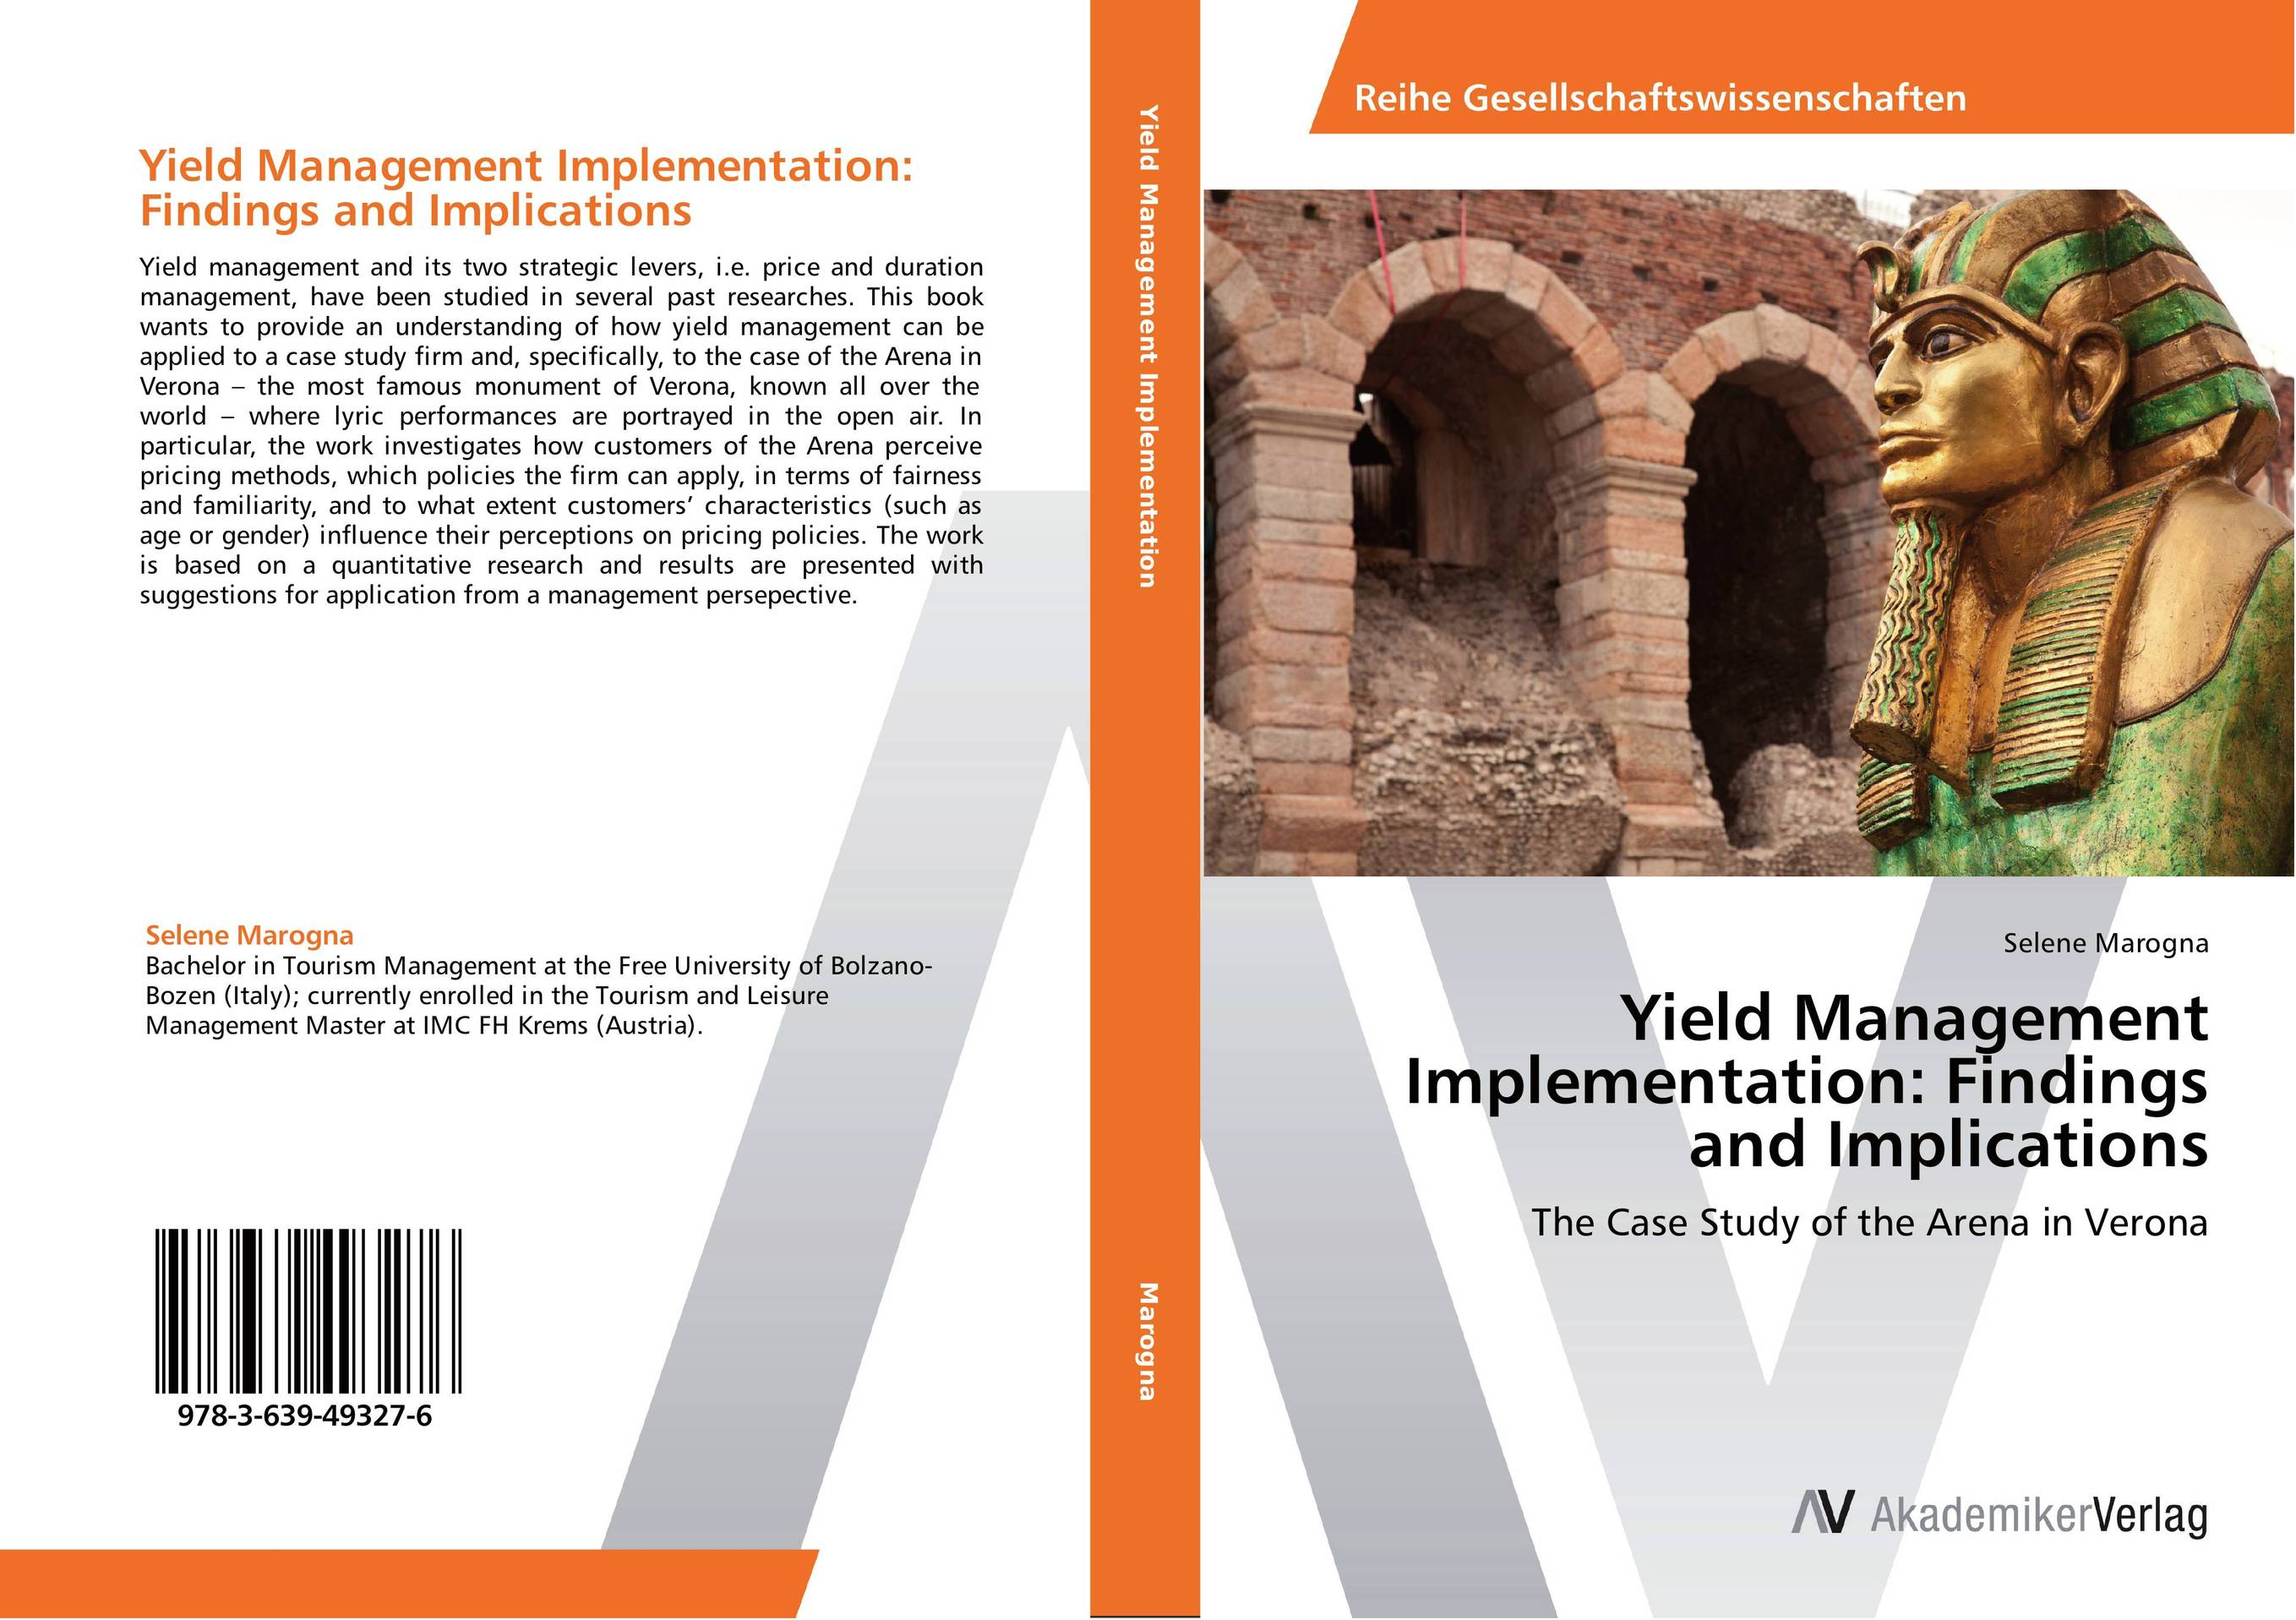 Yield Management Implementation: Findings and Implications michel chevalier luxury retail management how the world s top brands provide quality product and service support